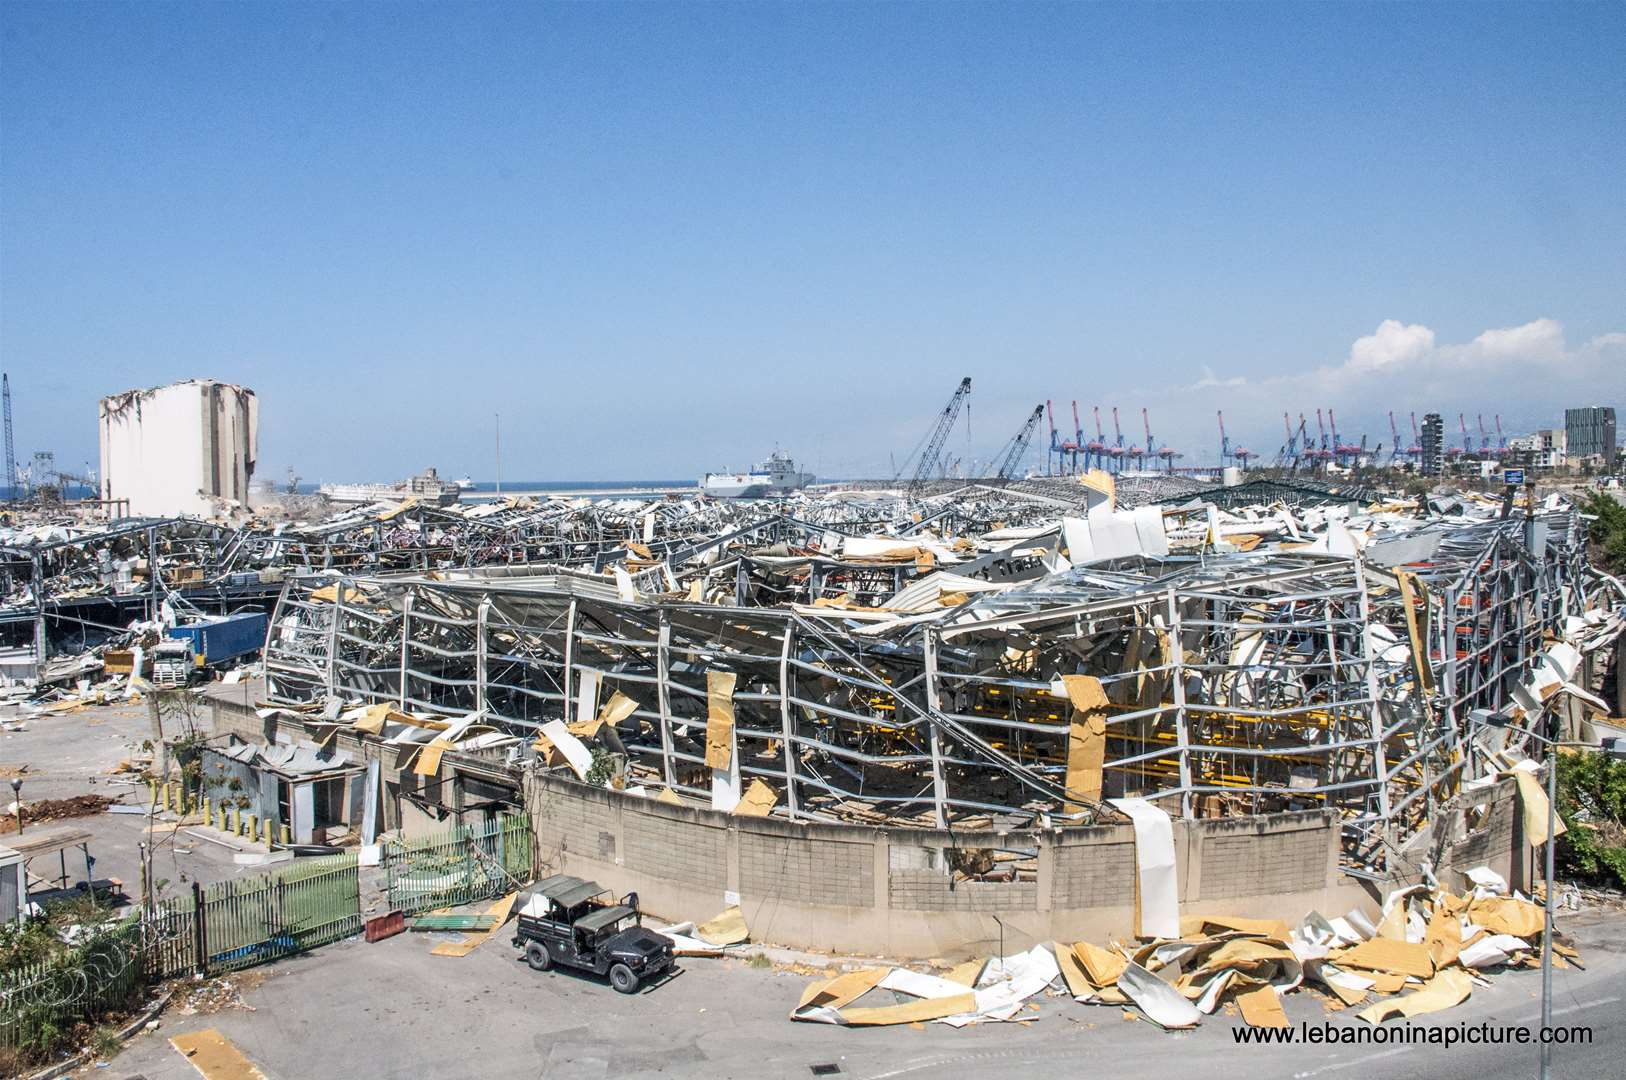 The port area where their used to be big refrigerators, all destroyed because of the Beirut Port Explosion